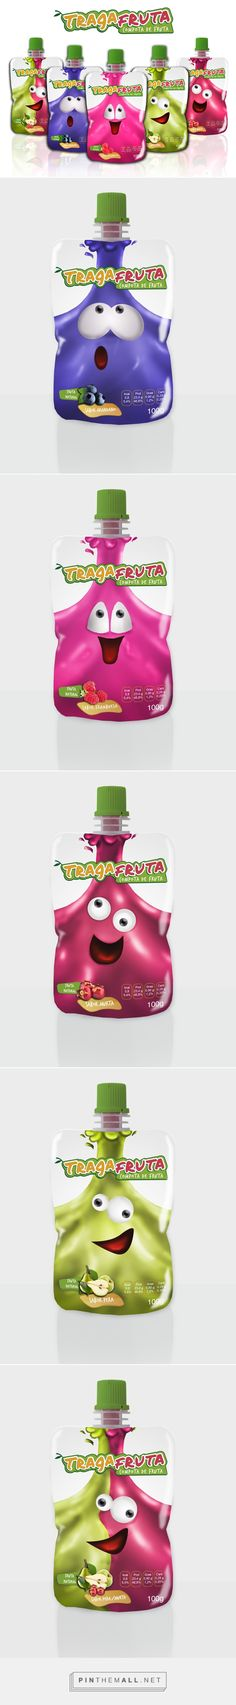 Tragafruta fruit juice on Behance by Natalia Trivelli curated by Packaging Diva PD. Your daily packaging smile : )